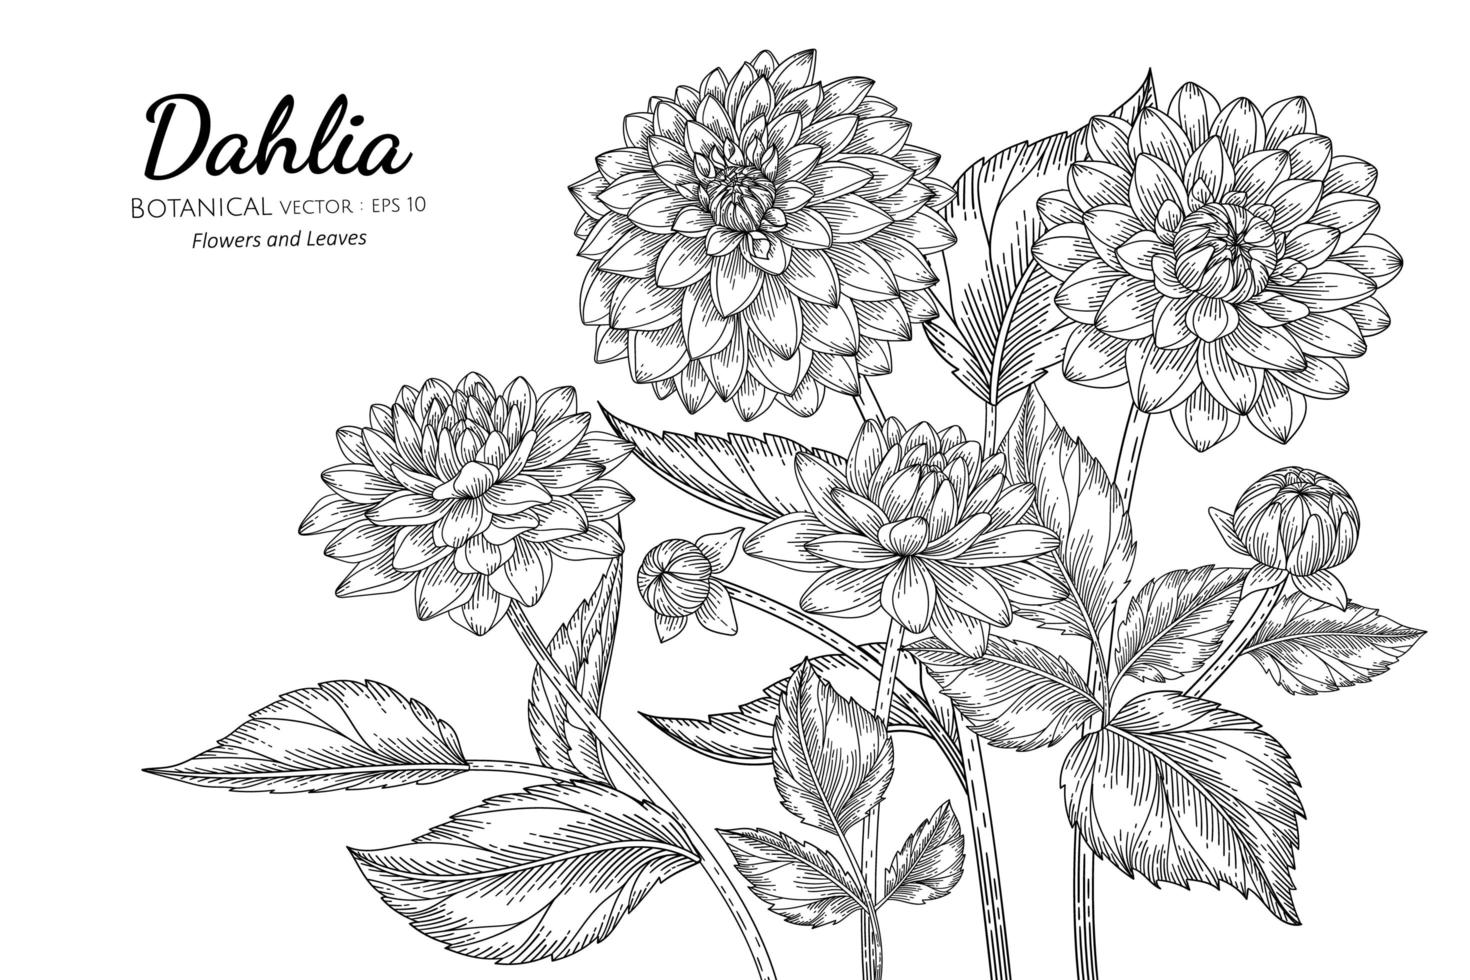 Hand drawn dahlia flower and leaves vector